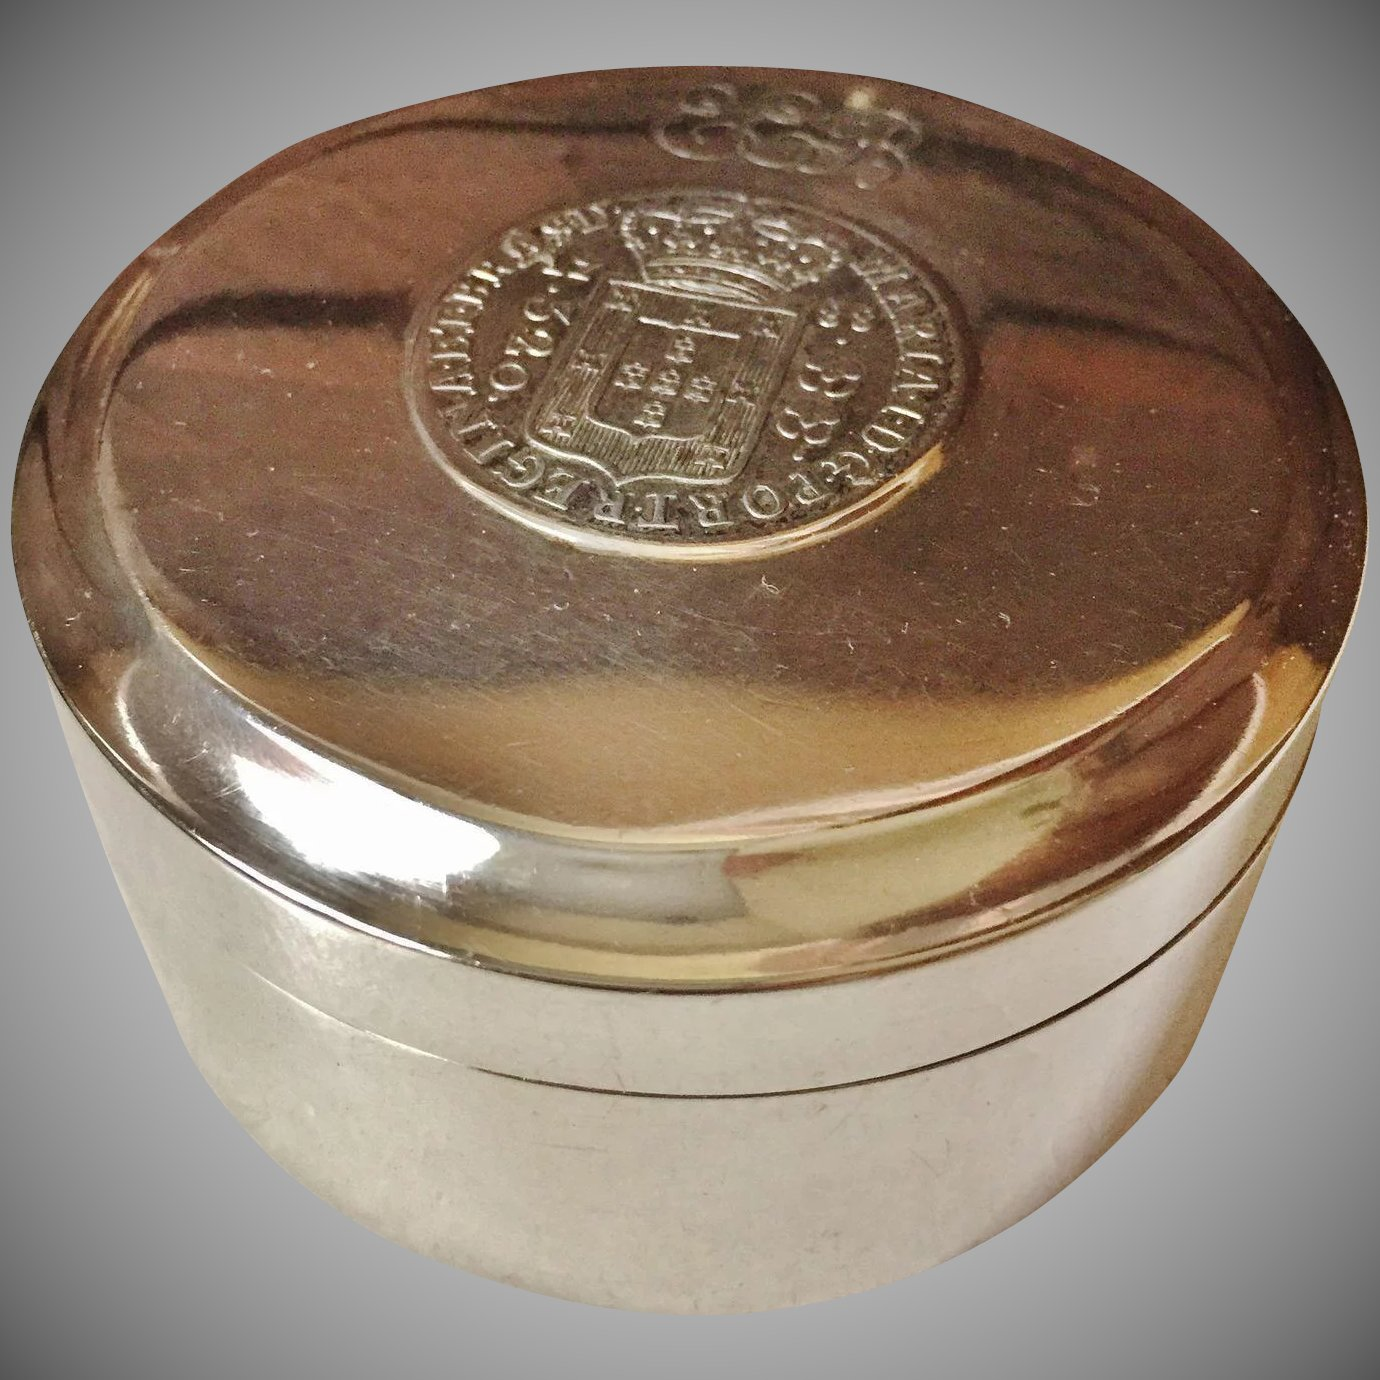 Most Sought After Antiques: 1804 Solid Silver Trinket Box. Sweden's Most Sought After